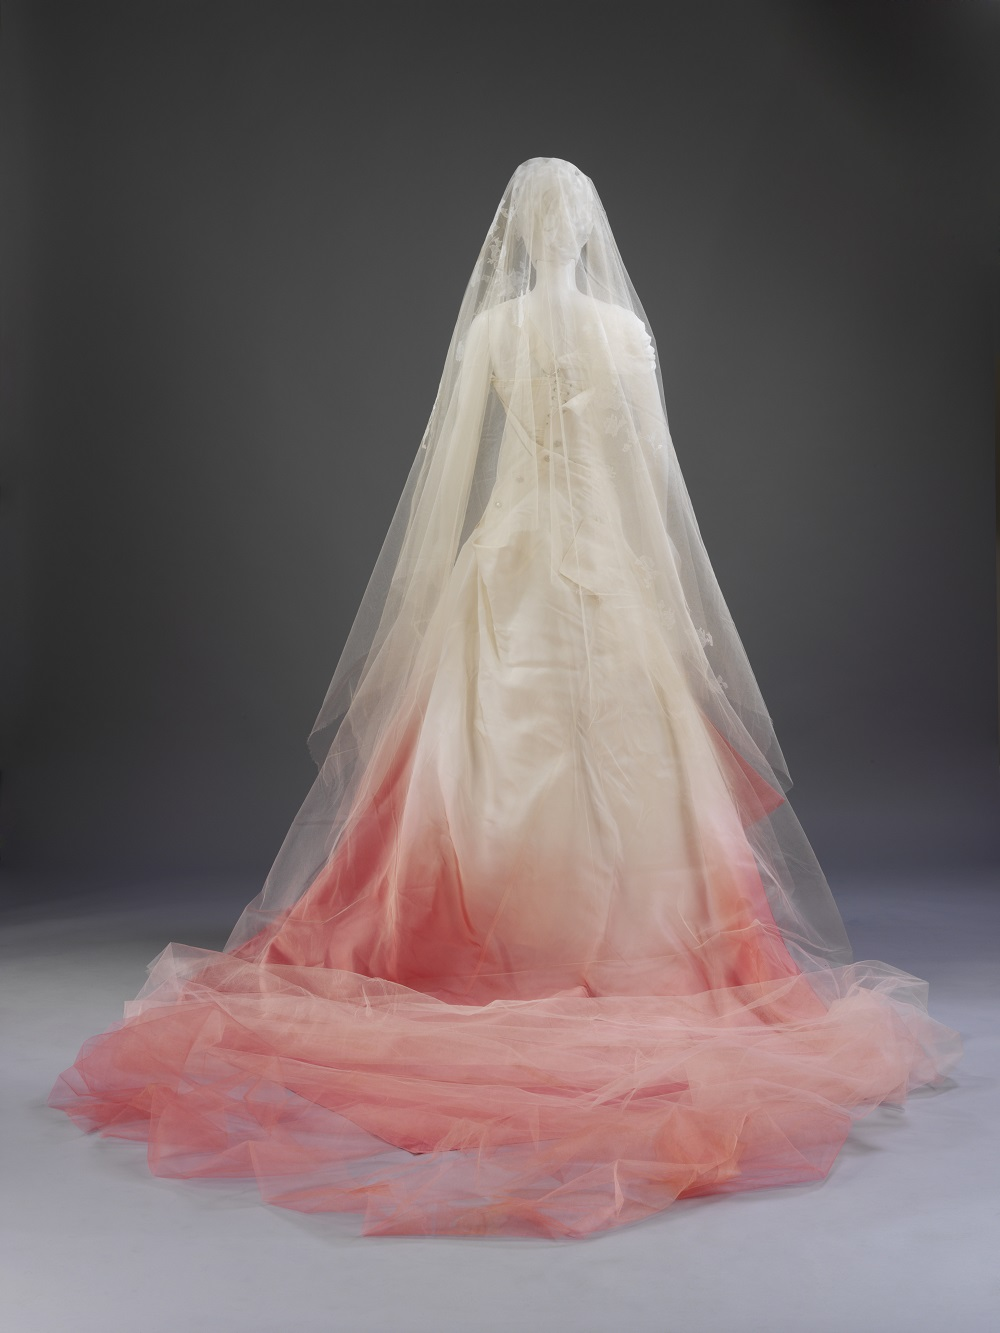 In a state of undress va blog the dress train and veil fall in a romantic tangle behind junglespirit Images